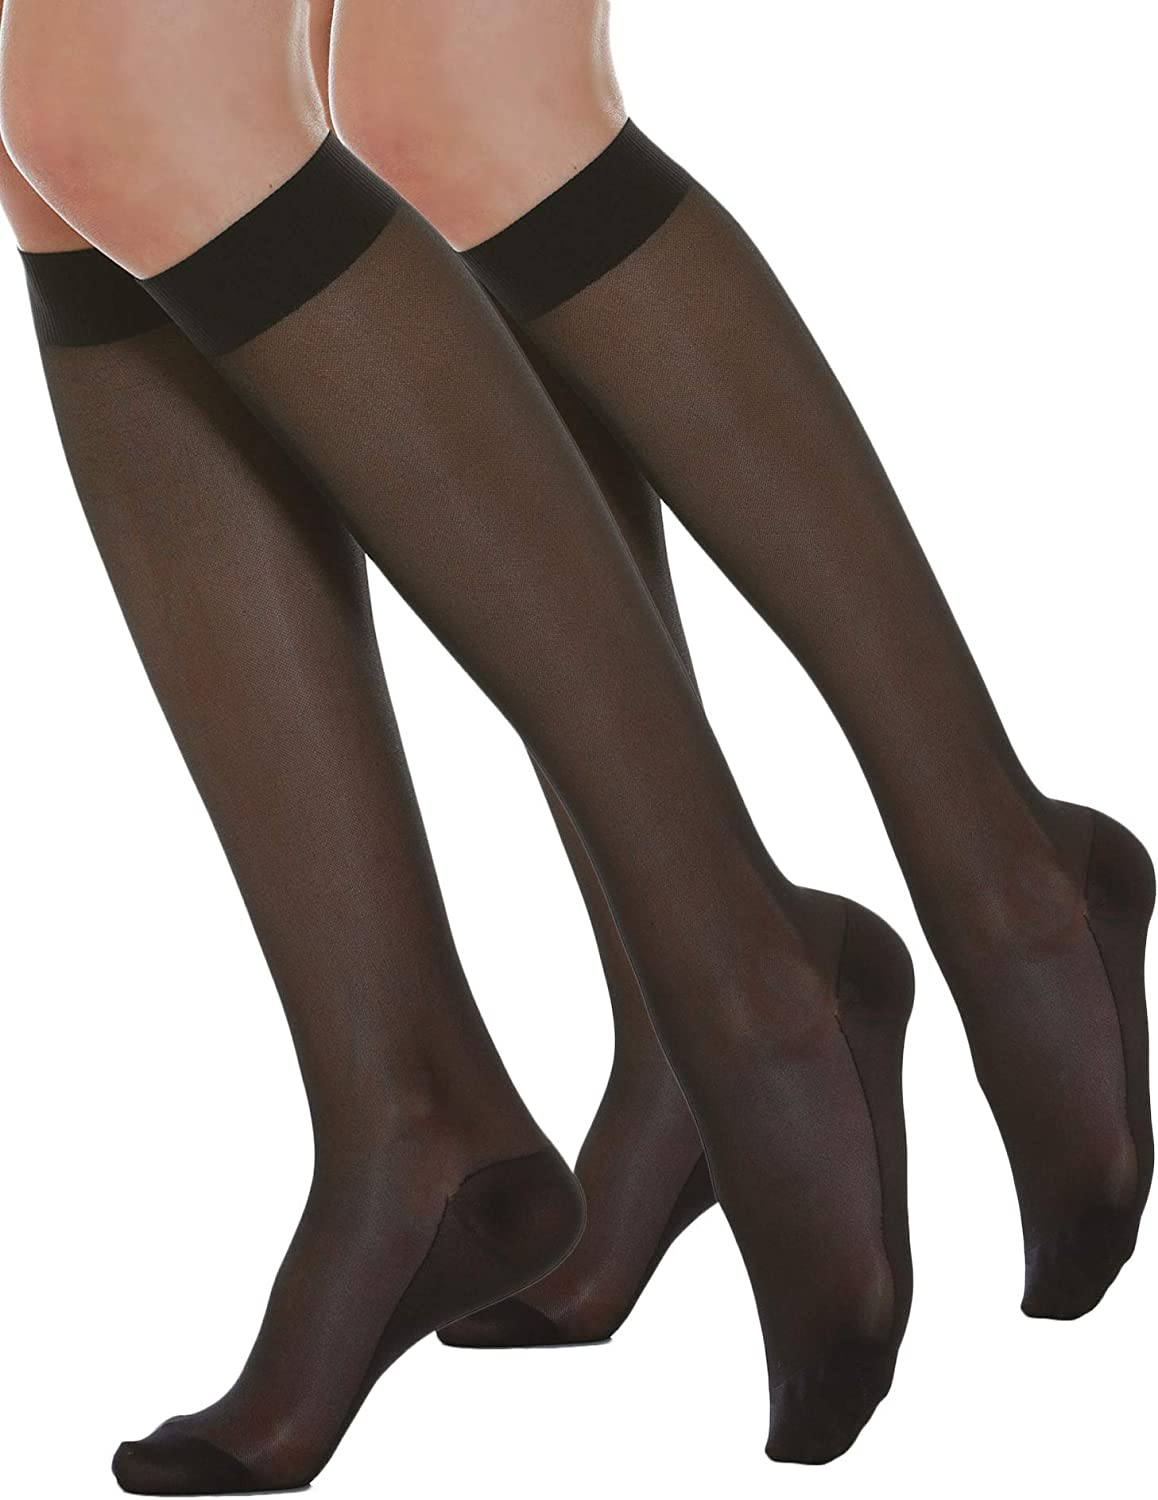 Relaxsan Basic 850P 100/% Made in Italy firm support knee high socks PLUS 20-30 mmHg